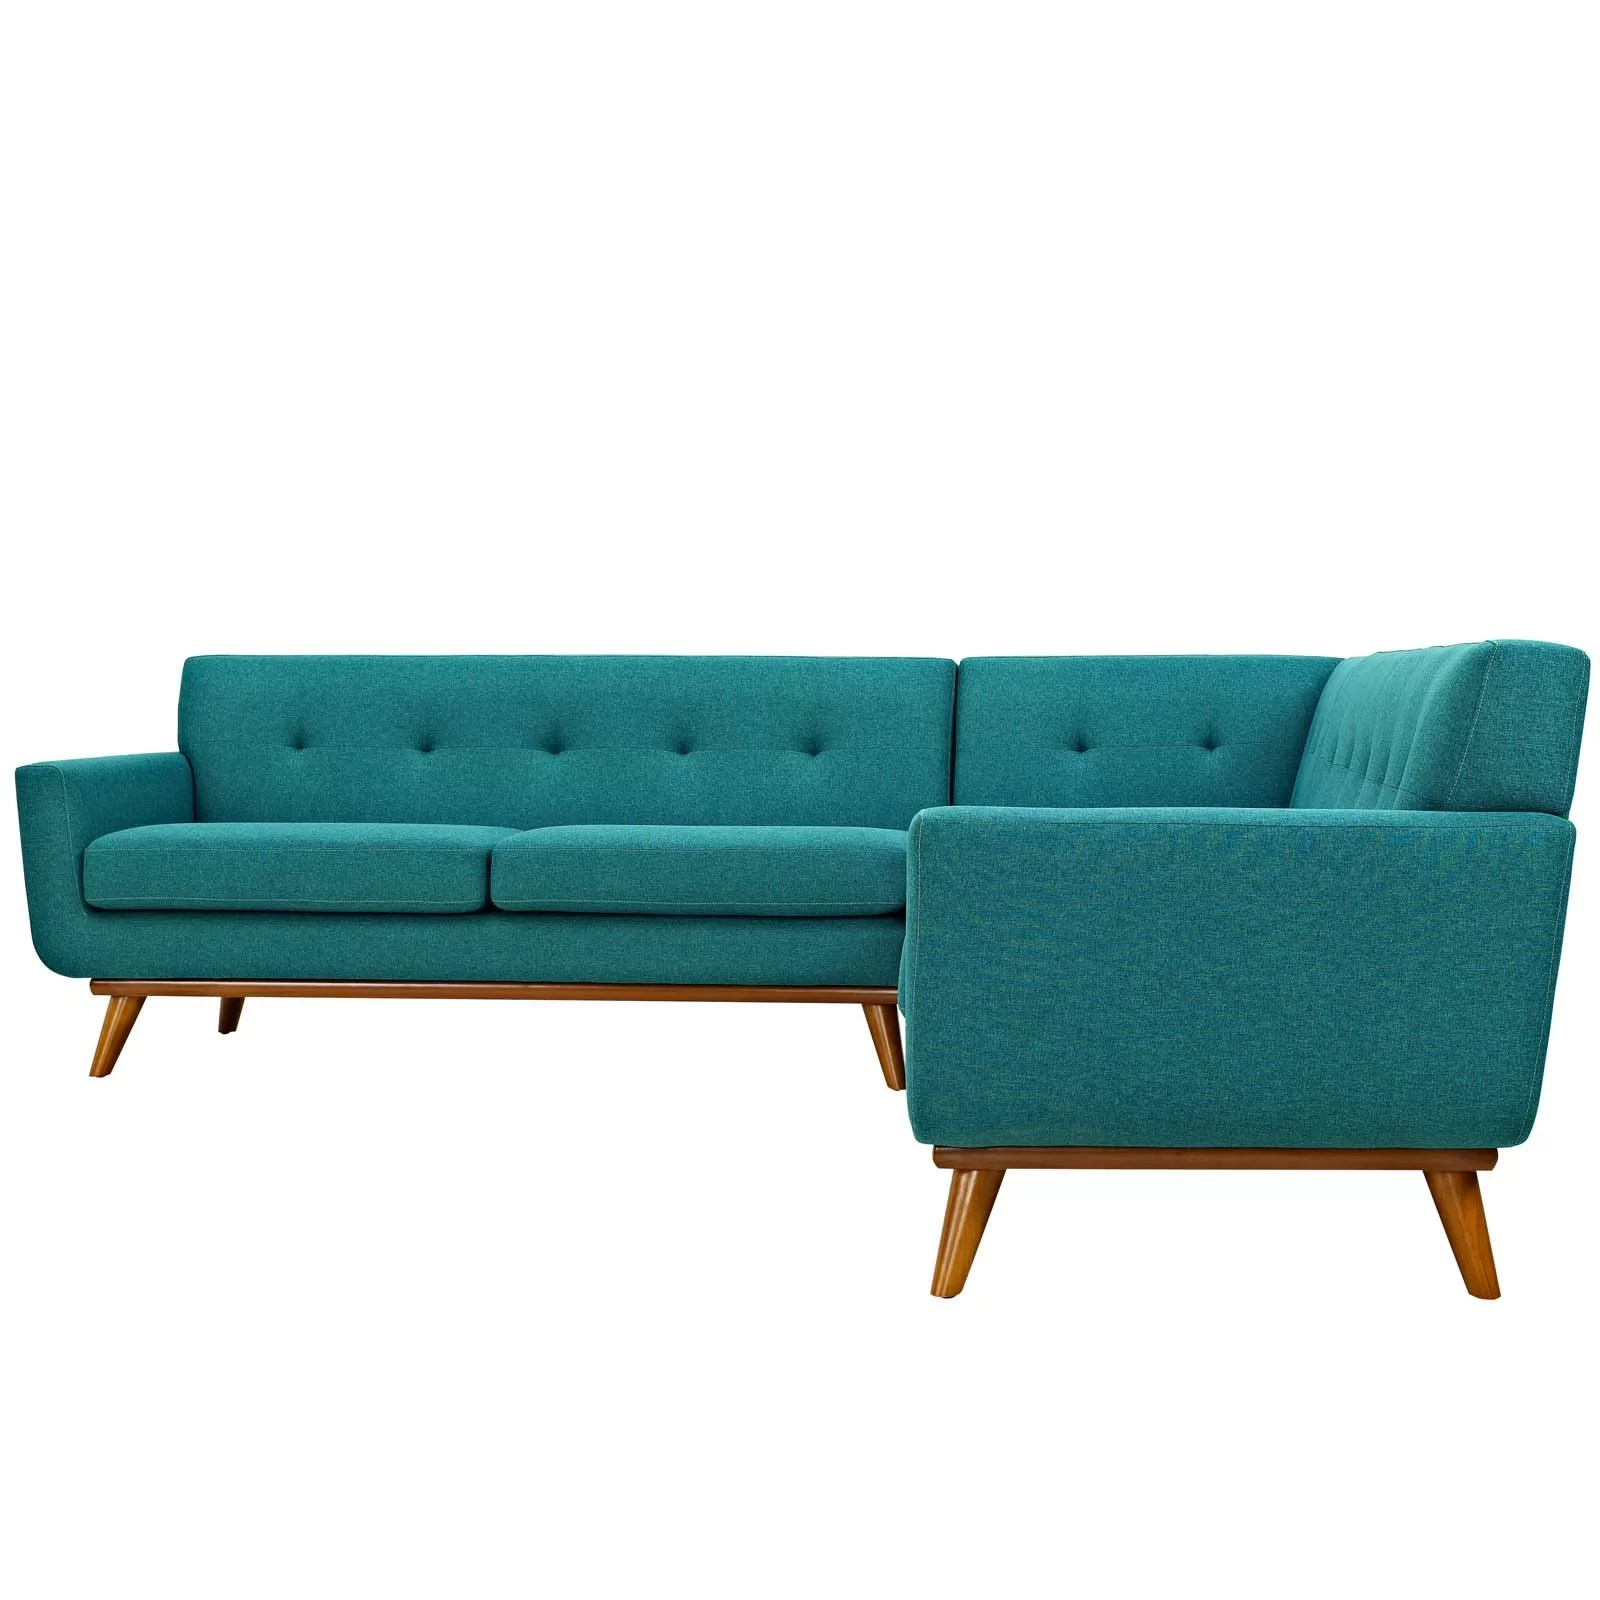 Retro Inflatable Sofa Johnston Sectional